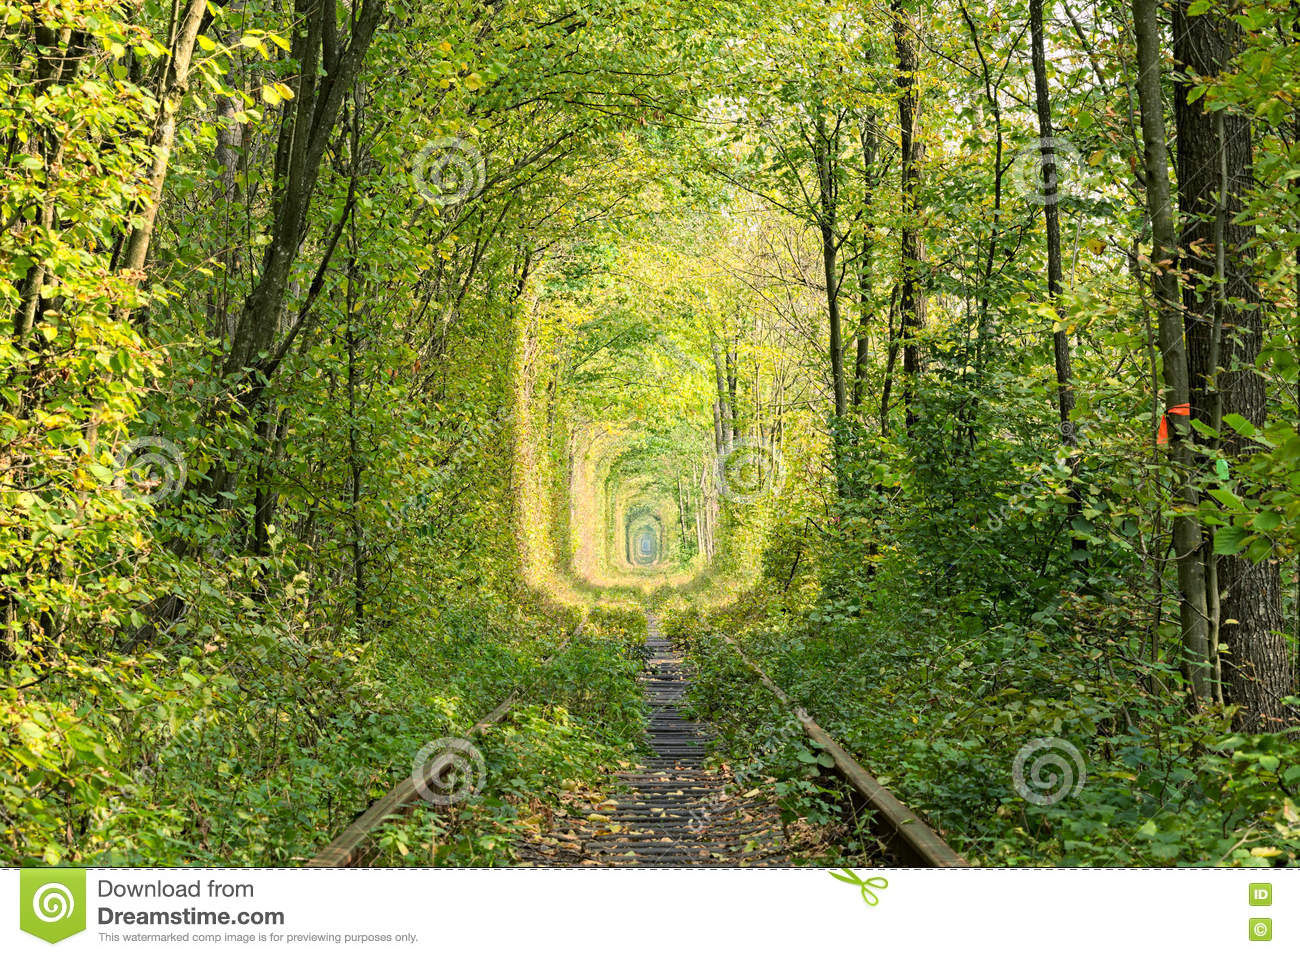 Old railway line. Nature with the help of trees has created a unique tunnel. Tunnel of love - wonderful place created by nature